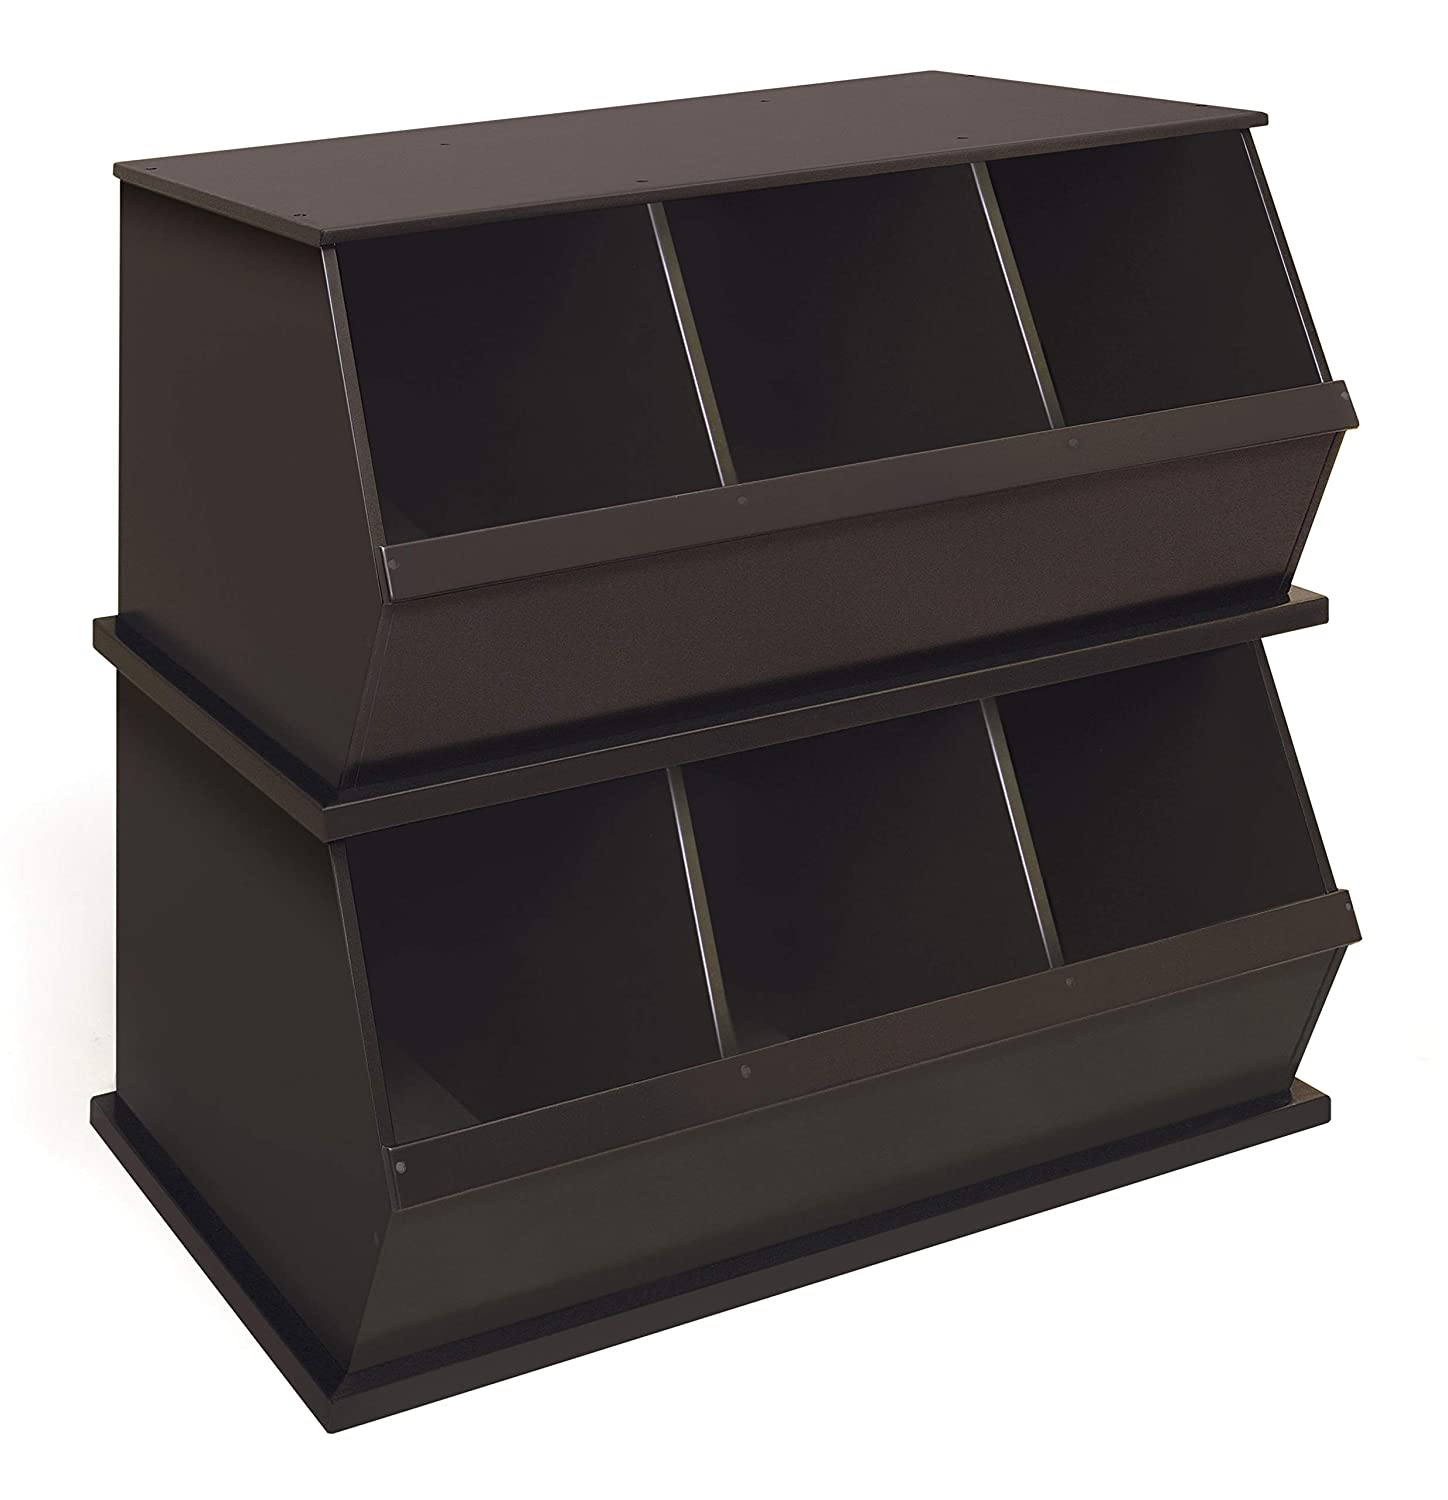 Stackable Wooden 3 Bin Open Storage Toy Organizing Cubby